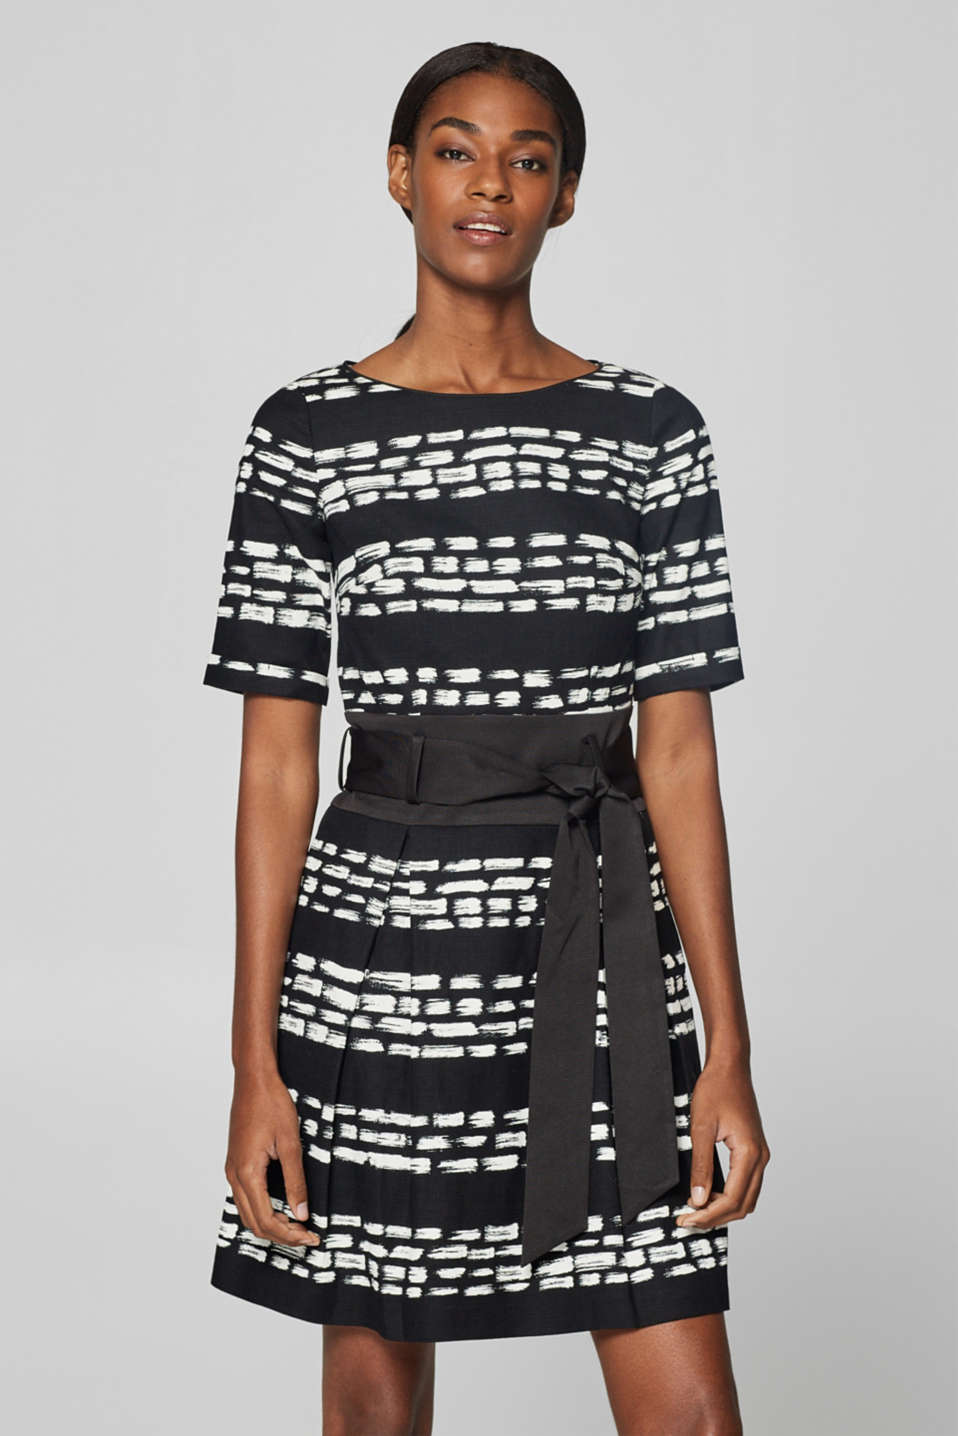 Esprit - Printed and textured stretch dress